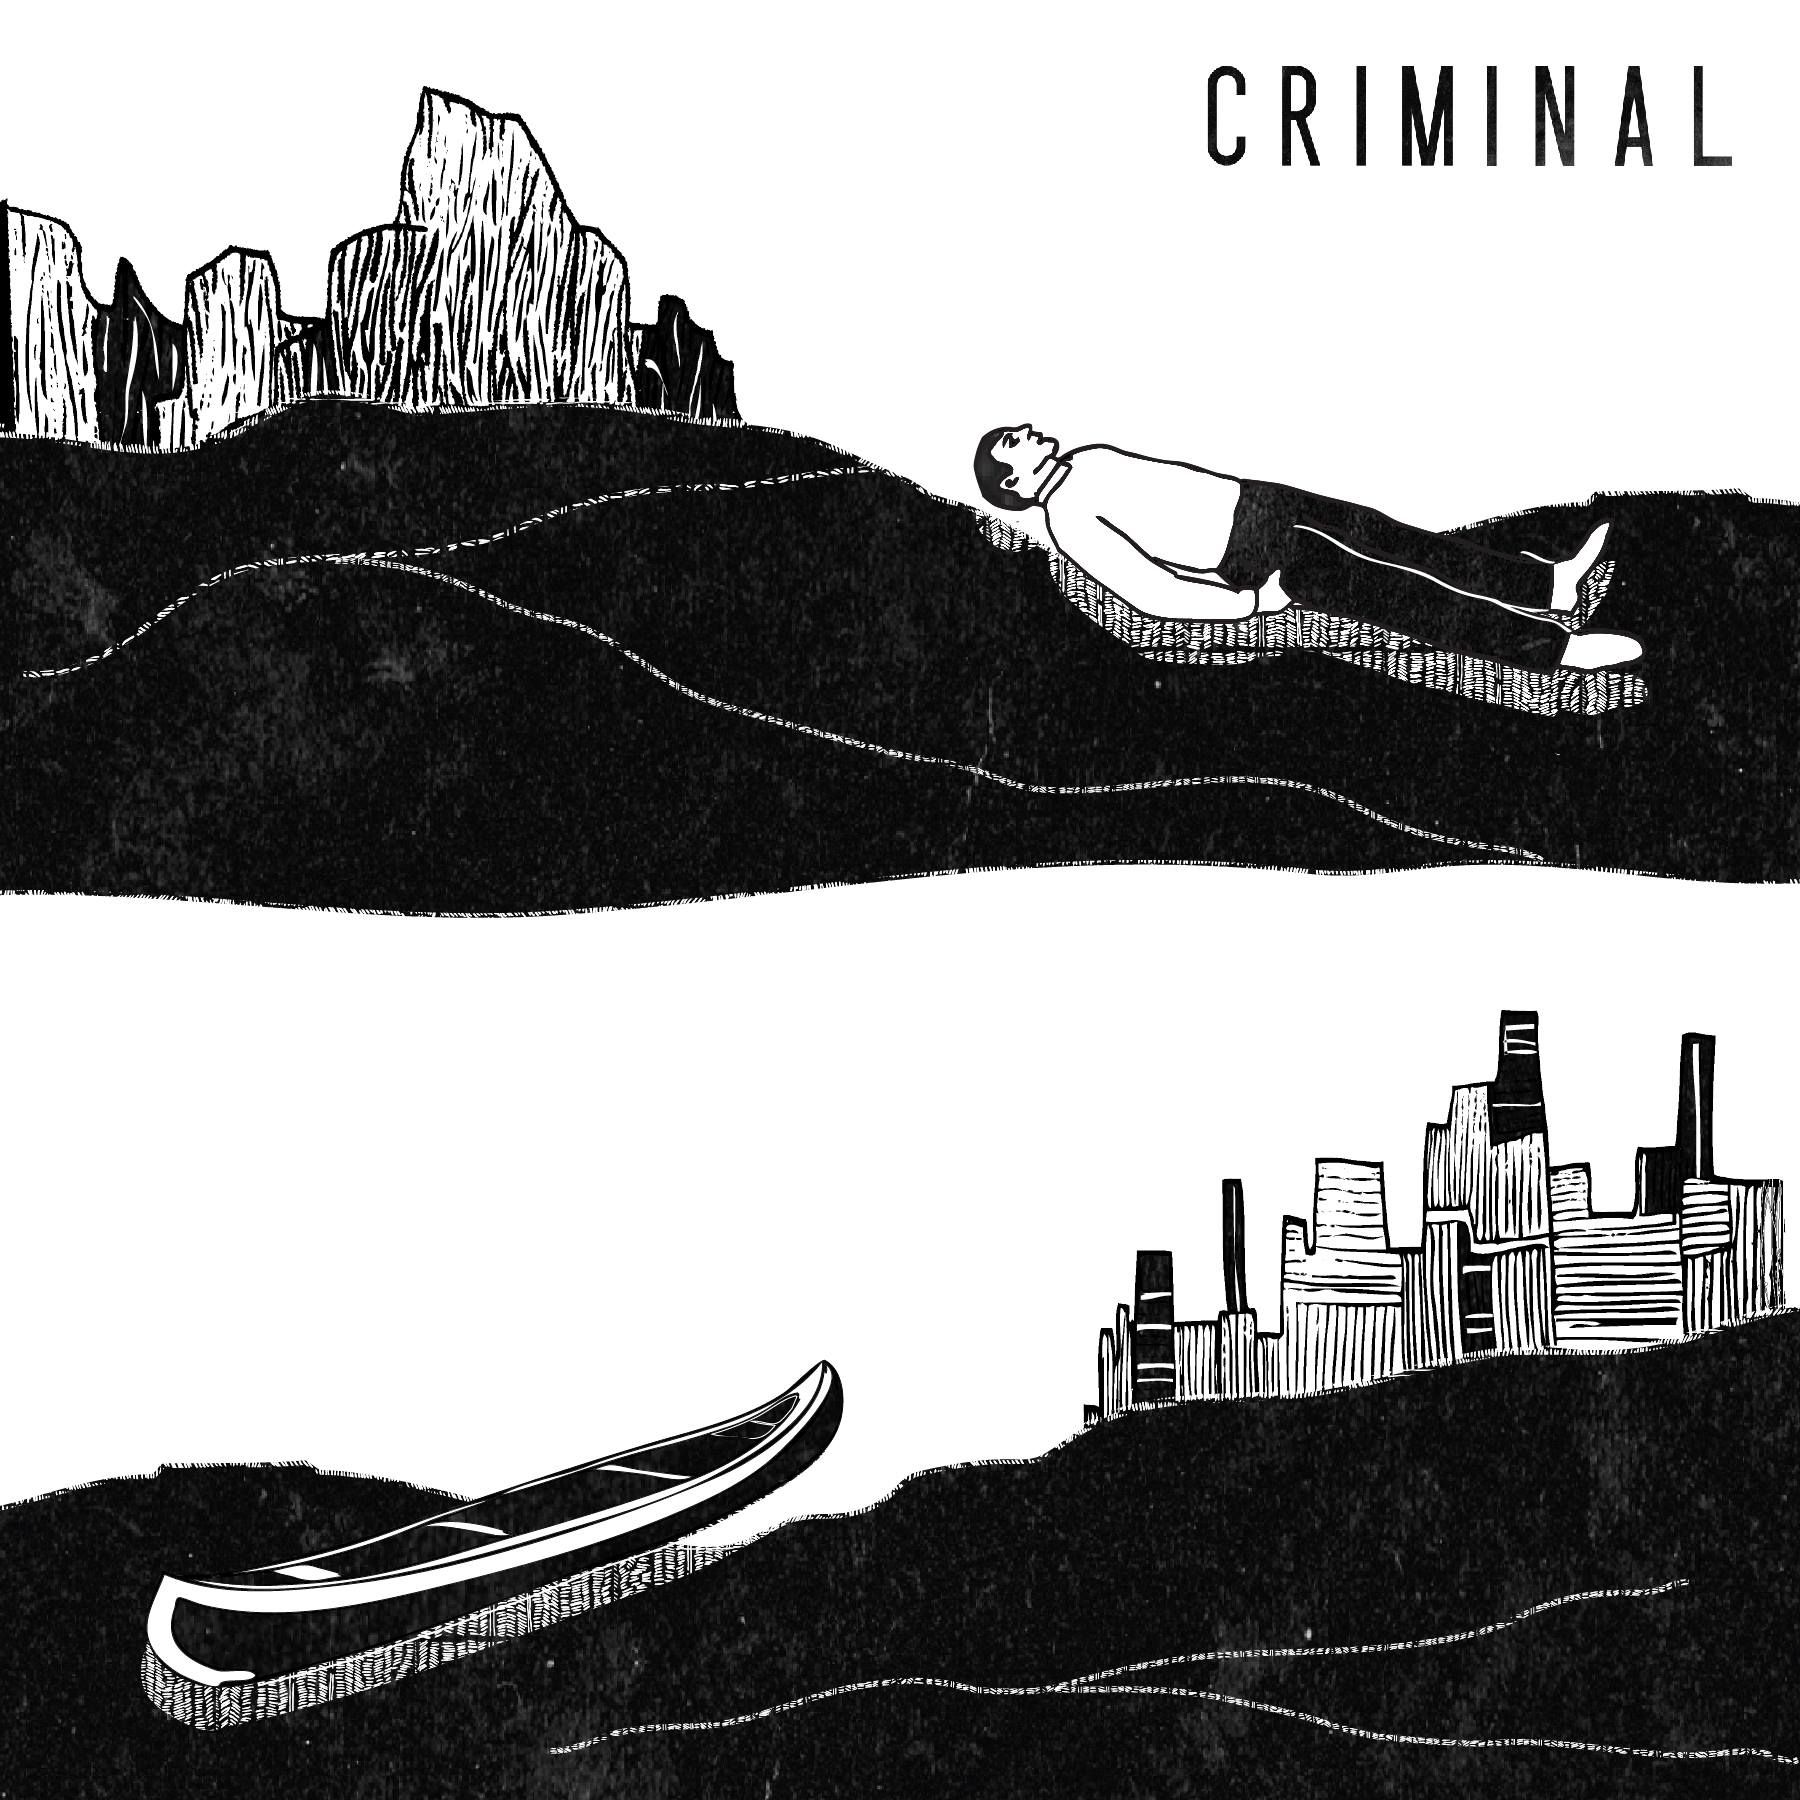 Listen Up: podcasts are solving crimes | The Signal